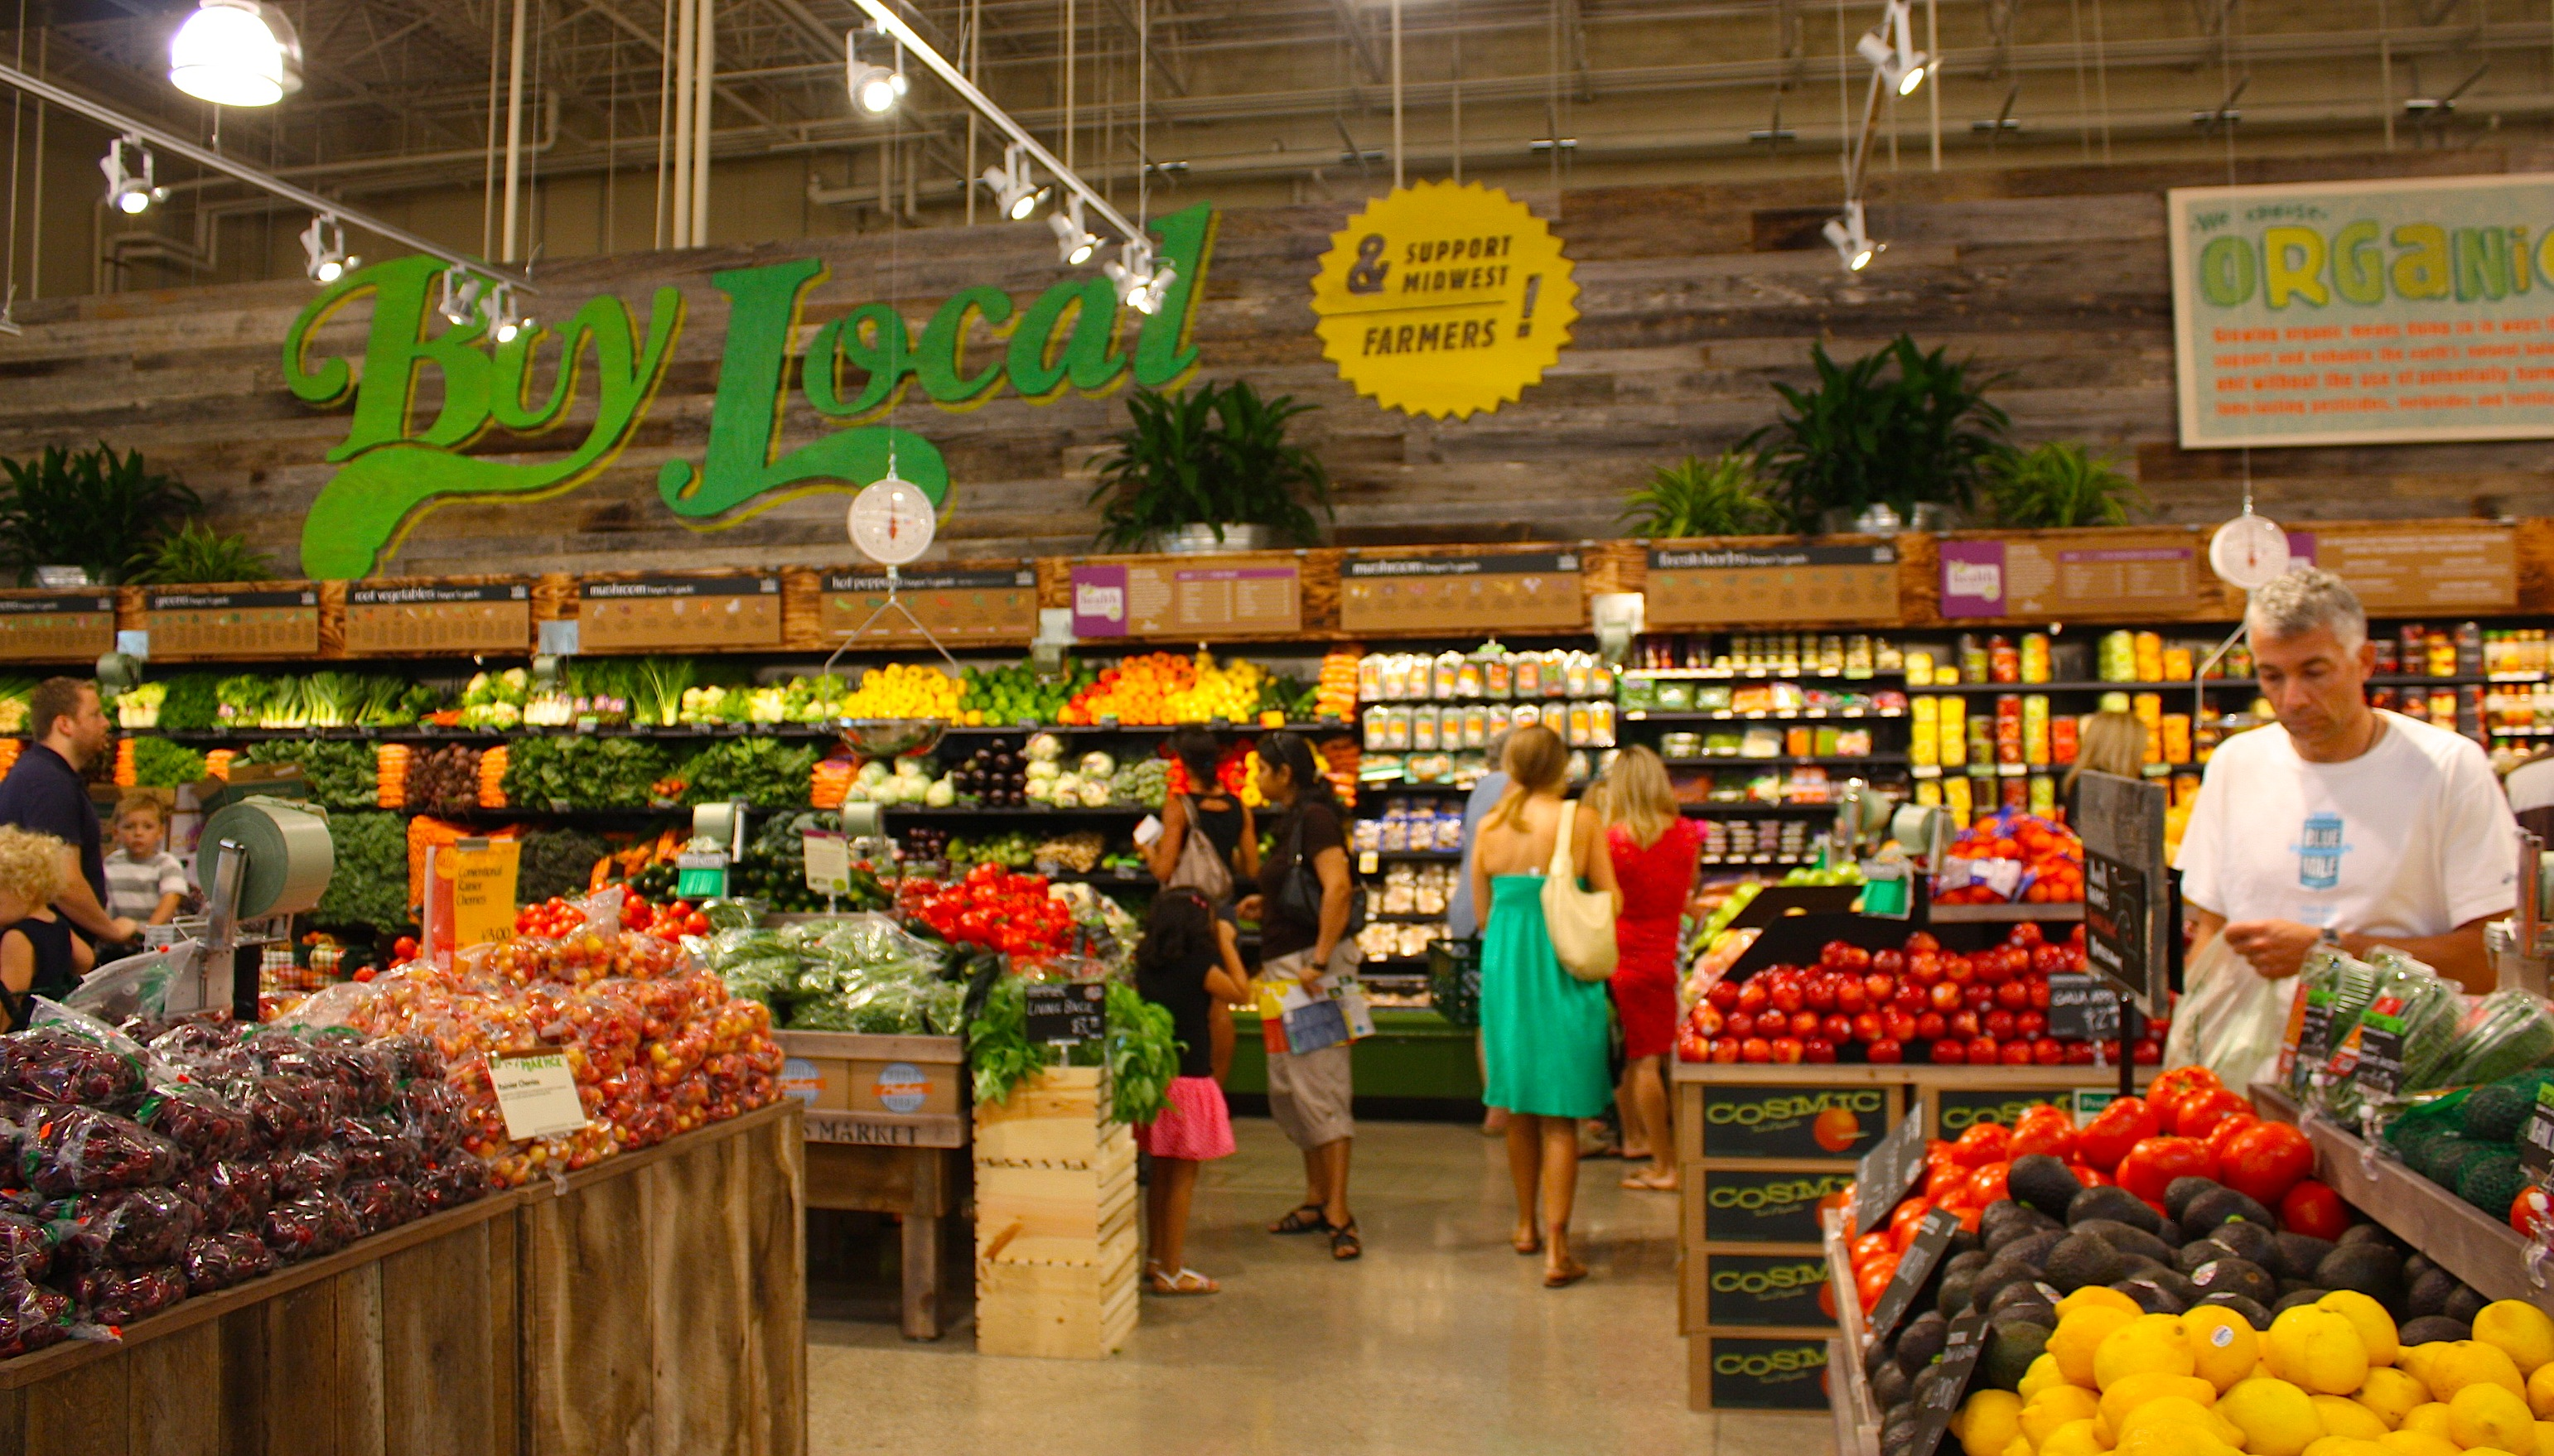 whole food Whole foods market, austin, tx 4,295,140 likes 7,941 talking about this 1,428,919 were here we know we've always been a little out of the ordinary.